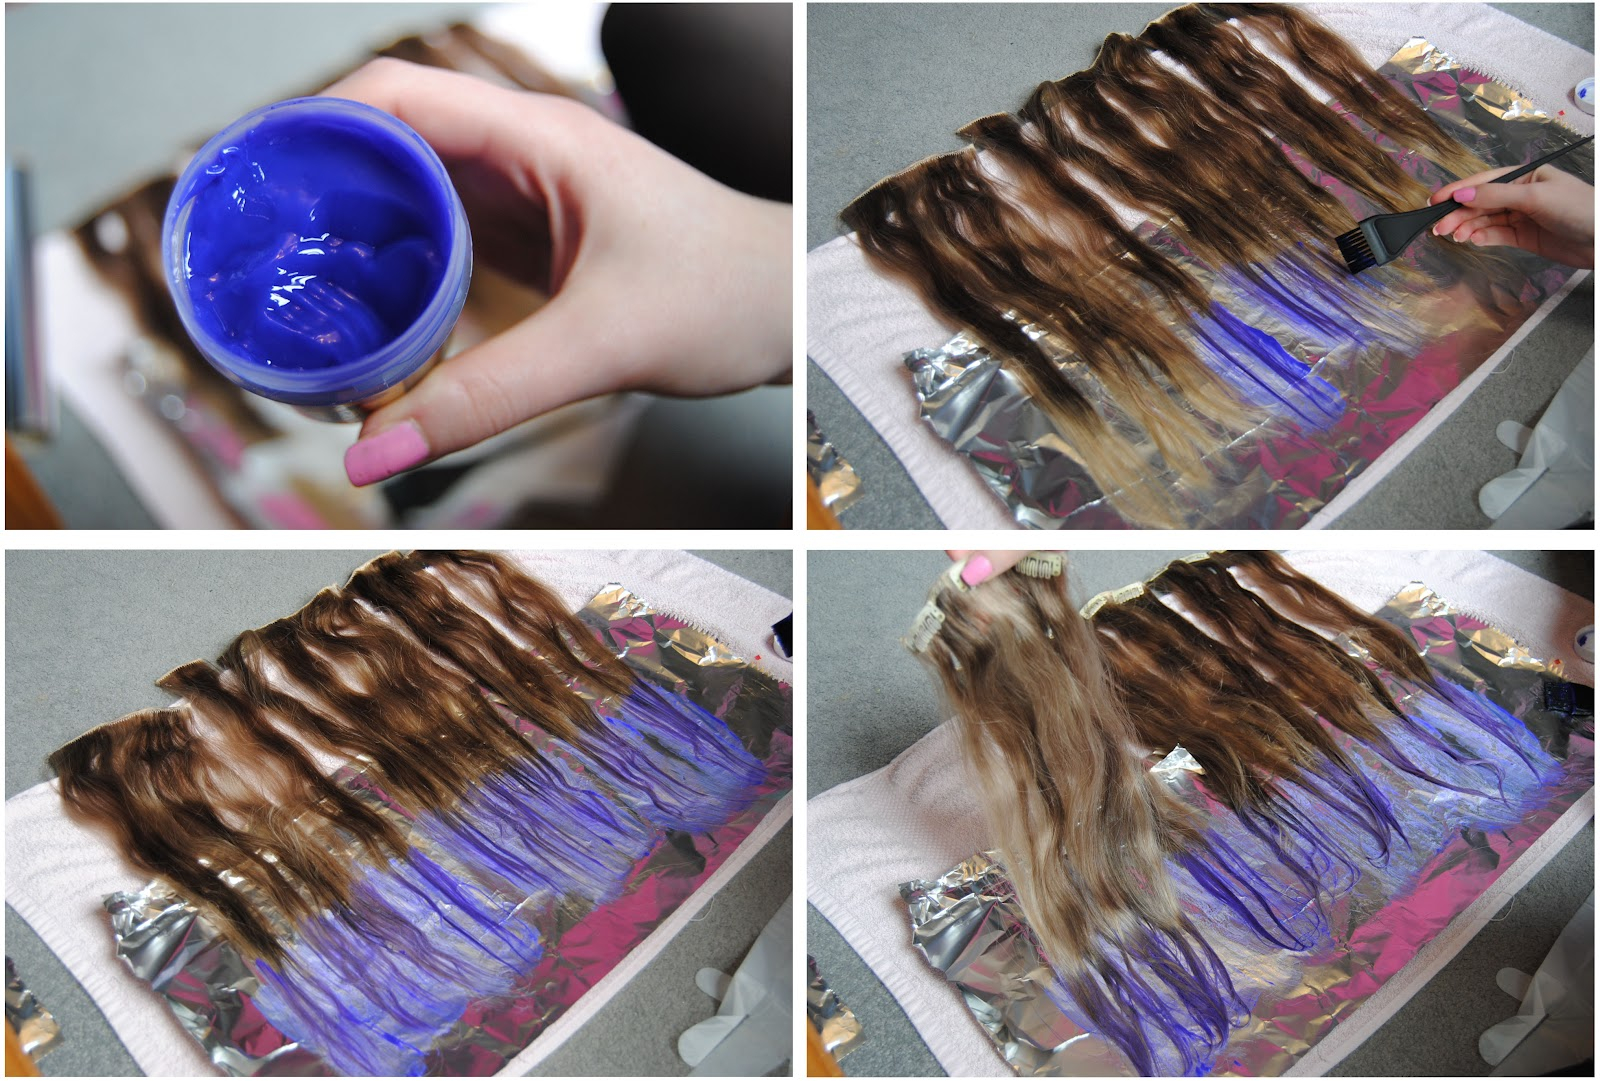 Diy lilac dip dye hair hello gwen start to apply the dye with your tint brush you can get one in superdrug or boots for a few pounds dye as much of the tips as you like pmusecretfo Choice Image